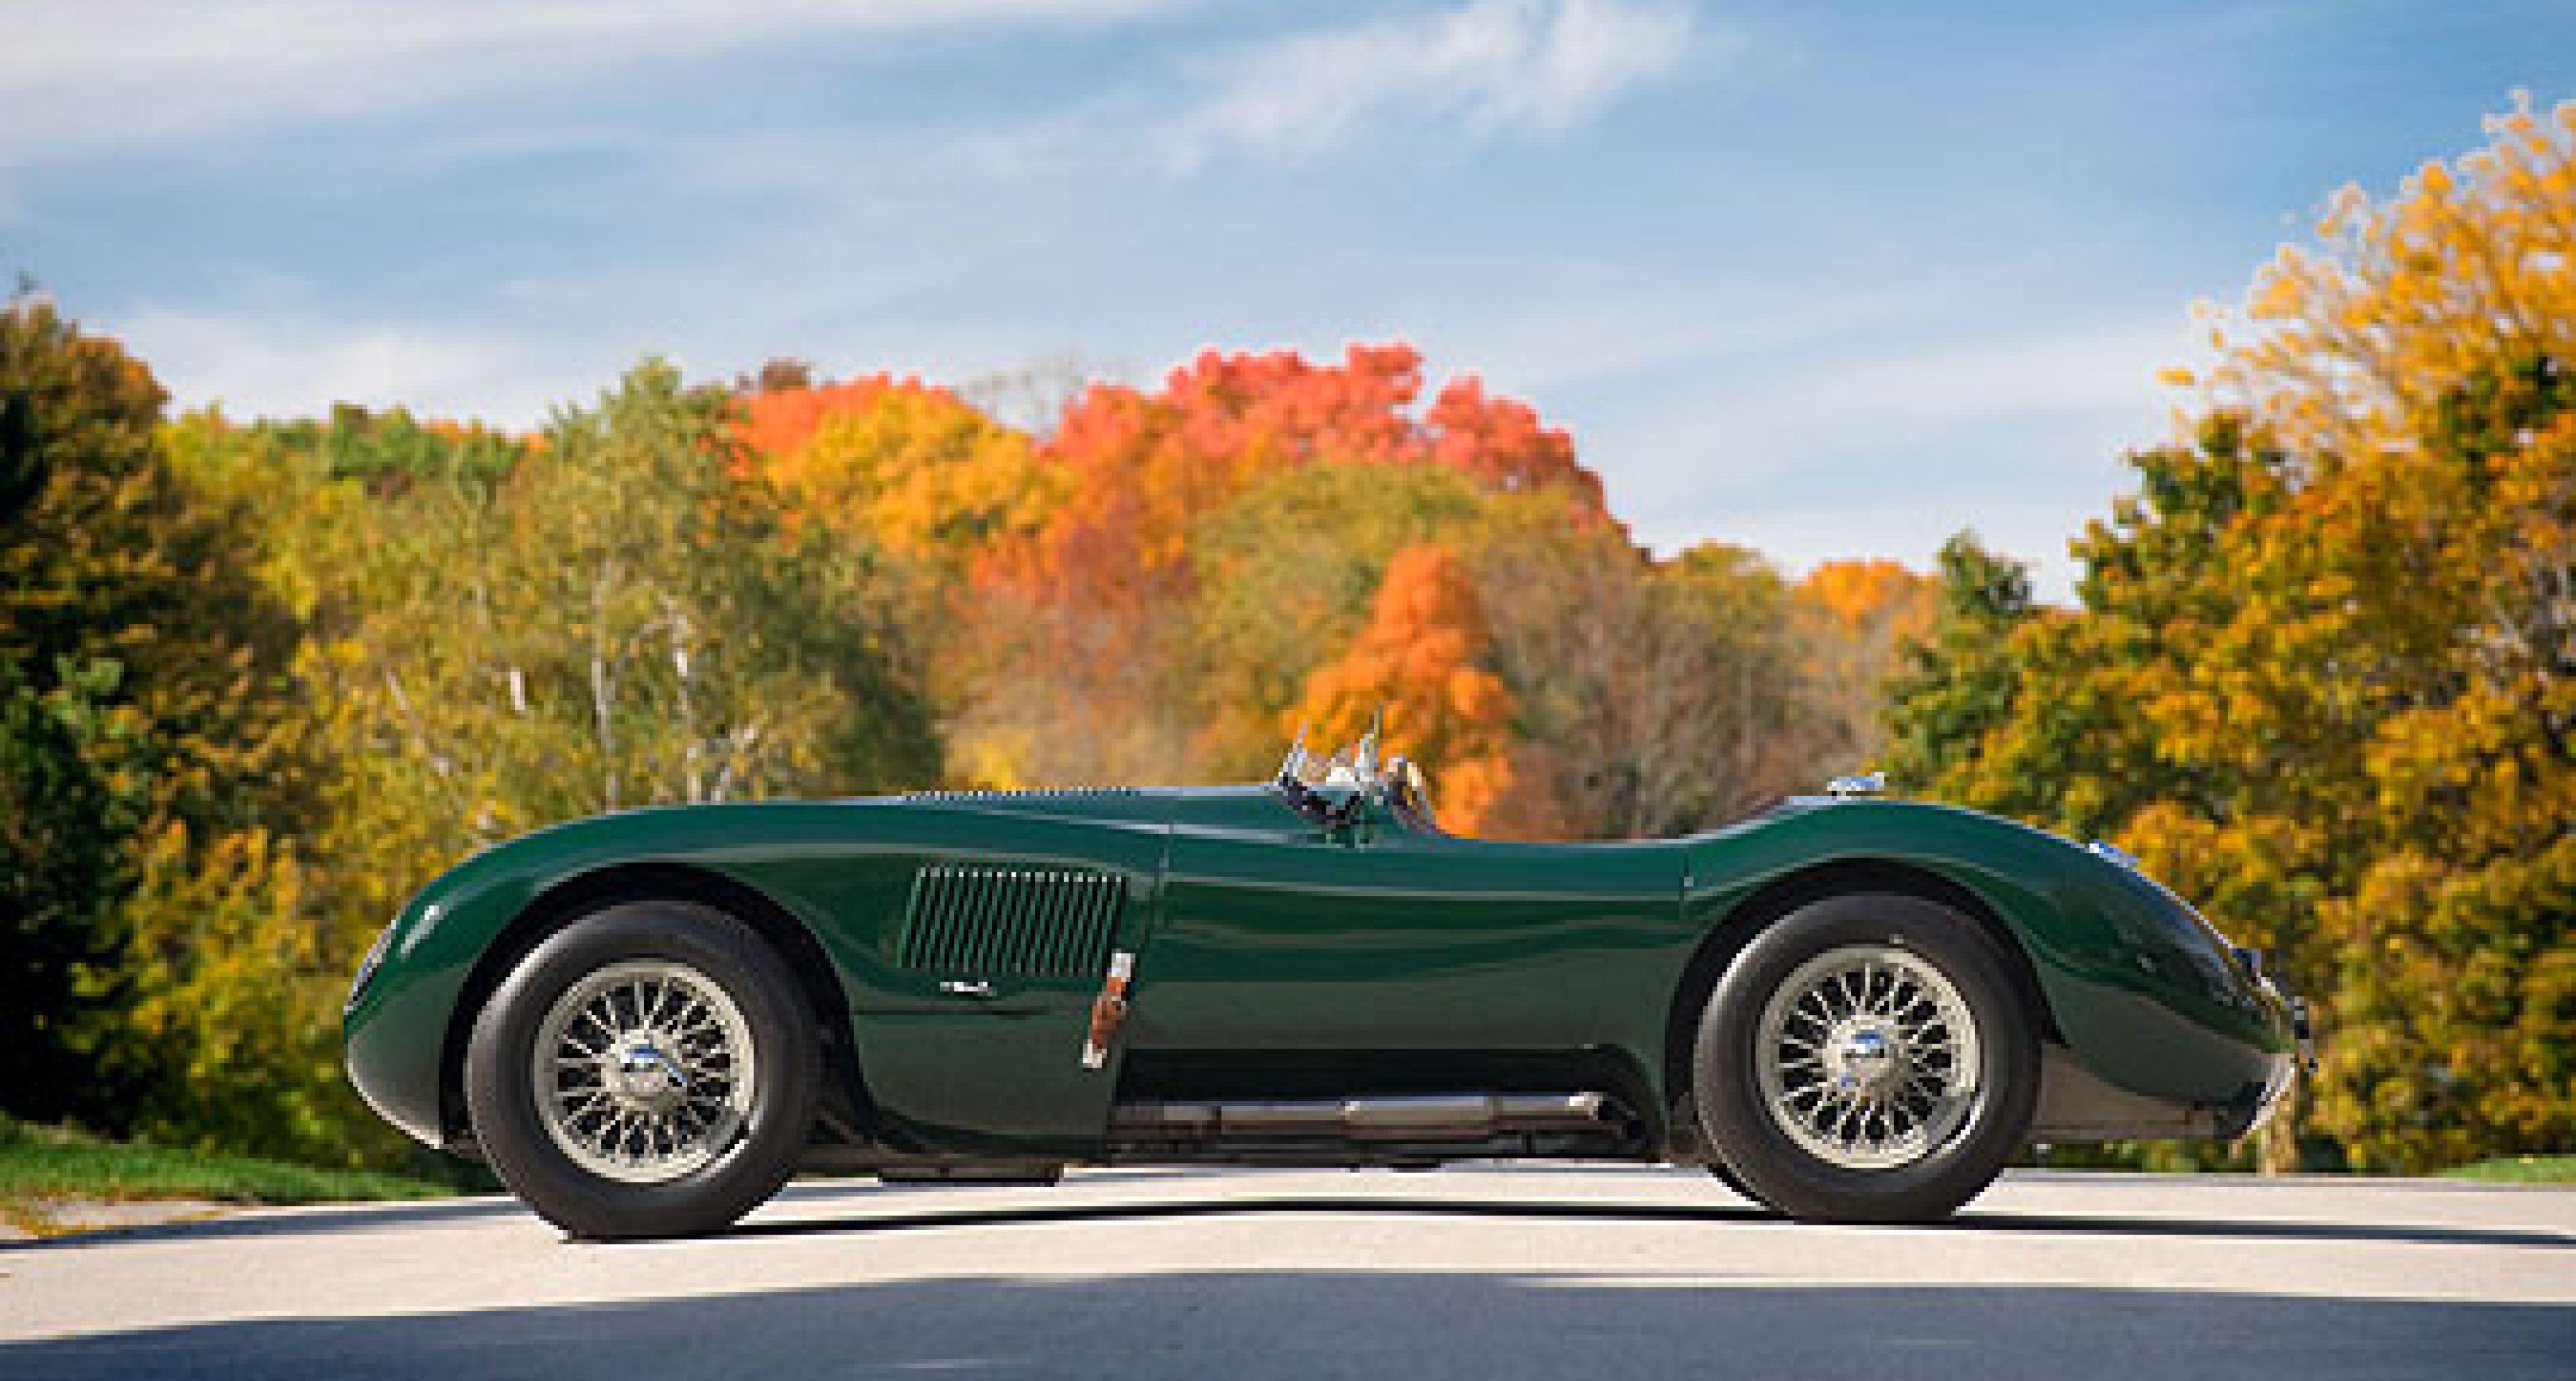 RM Auctions at Monterey 2009: 1952 Jaguar C-type an Early Headlining Entry